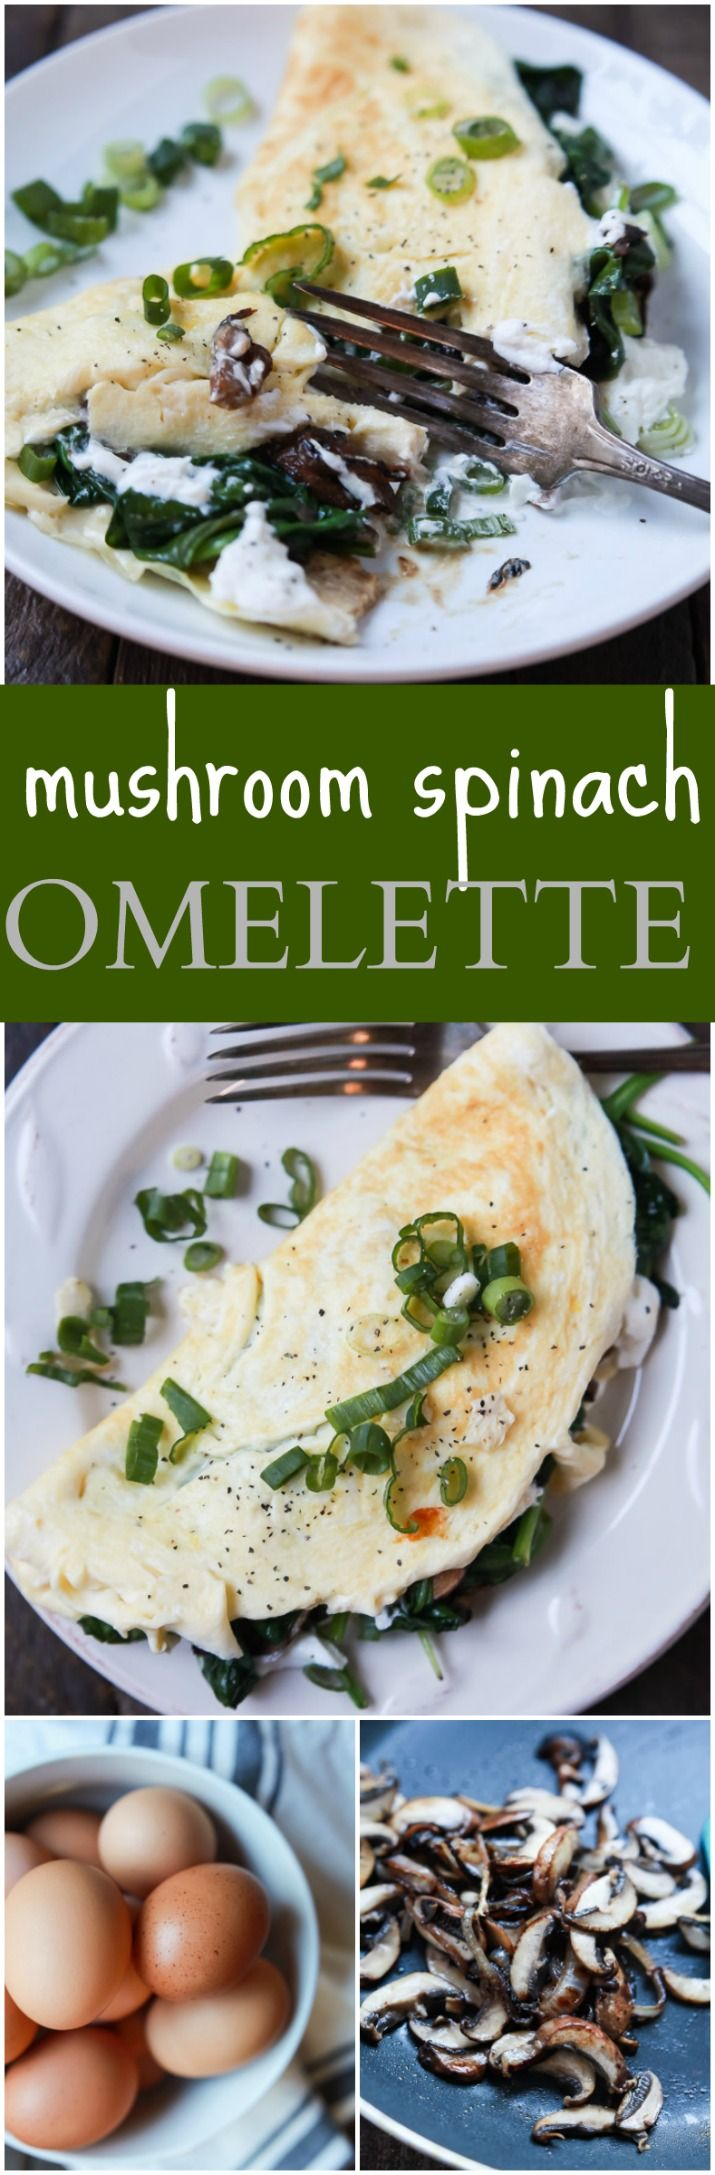 Mushroom Spinach Omelette Recipe - the perfect protein packed breakfast that totally delivers on flavor. Filled with nutritious vegetables, creamy goat cheese, and egg whites for a easy healthy breakfast! | joyfulhealthyeats.com